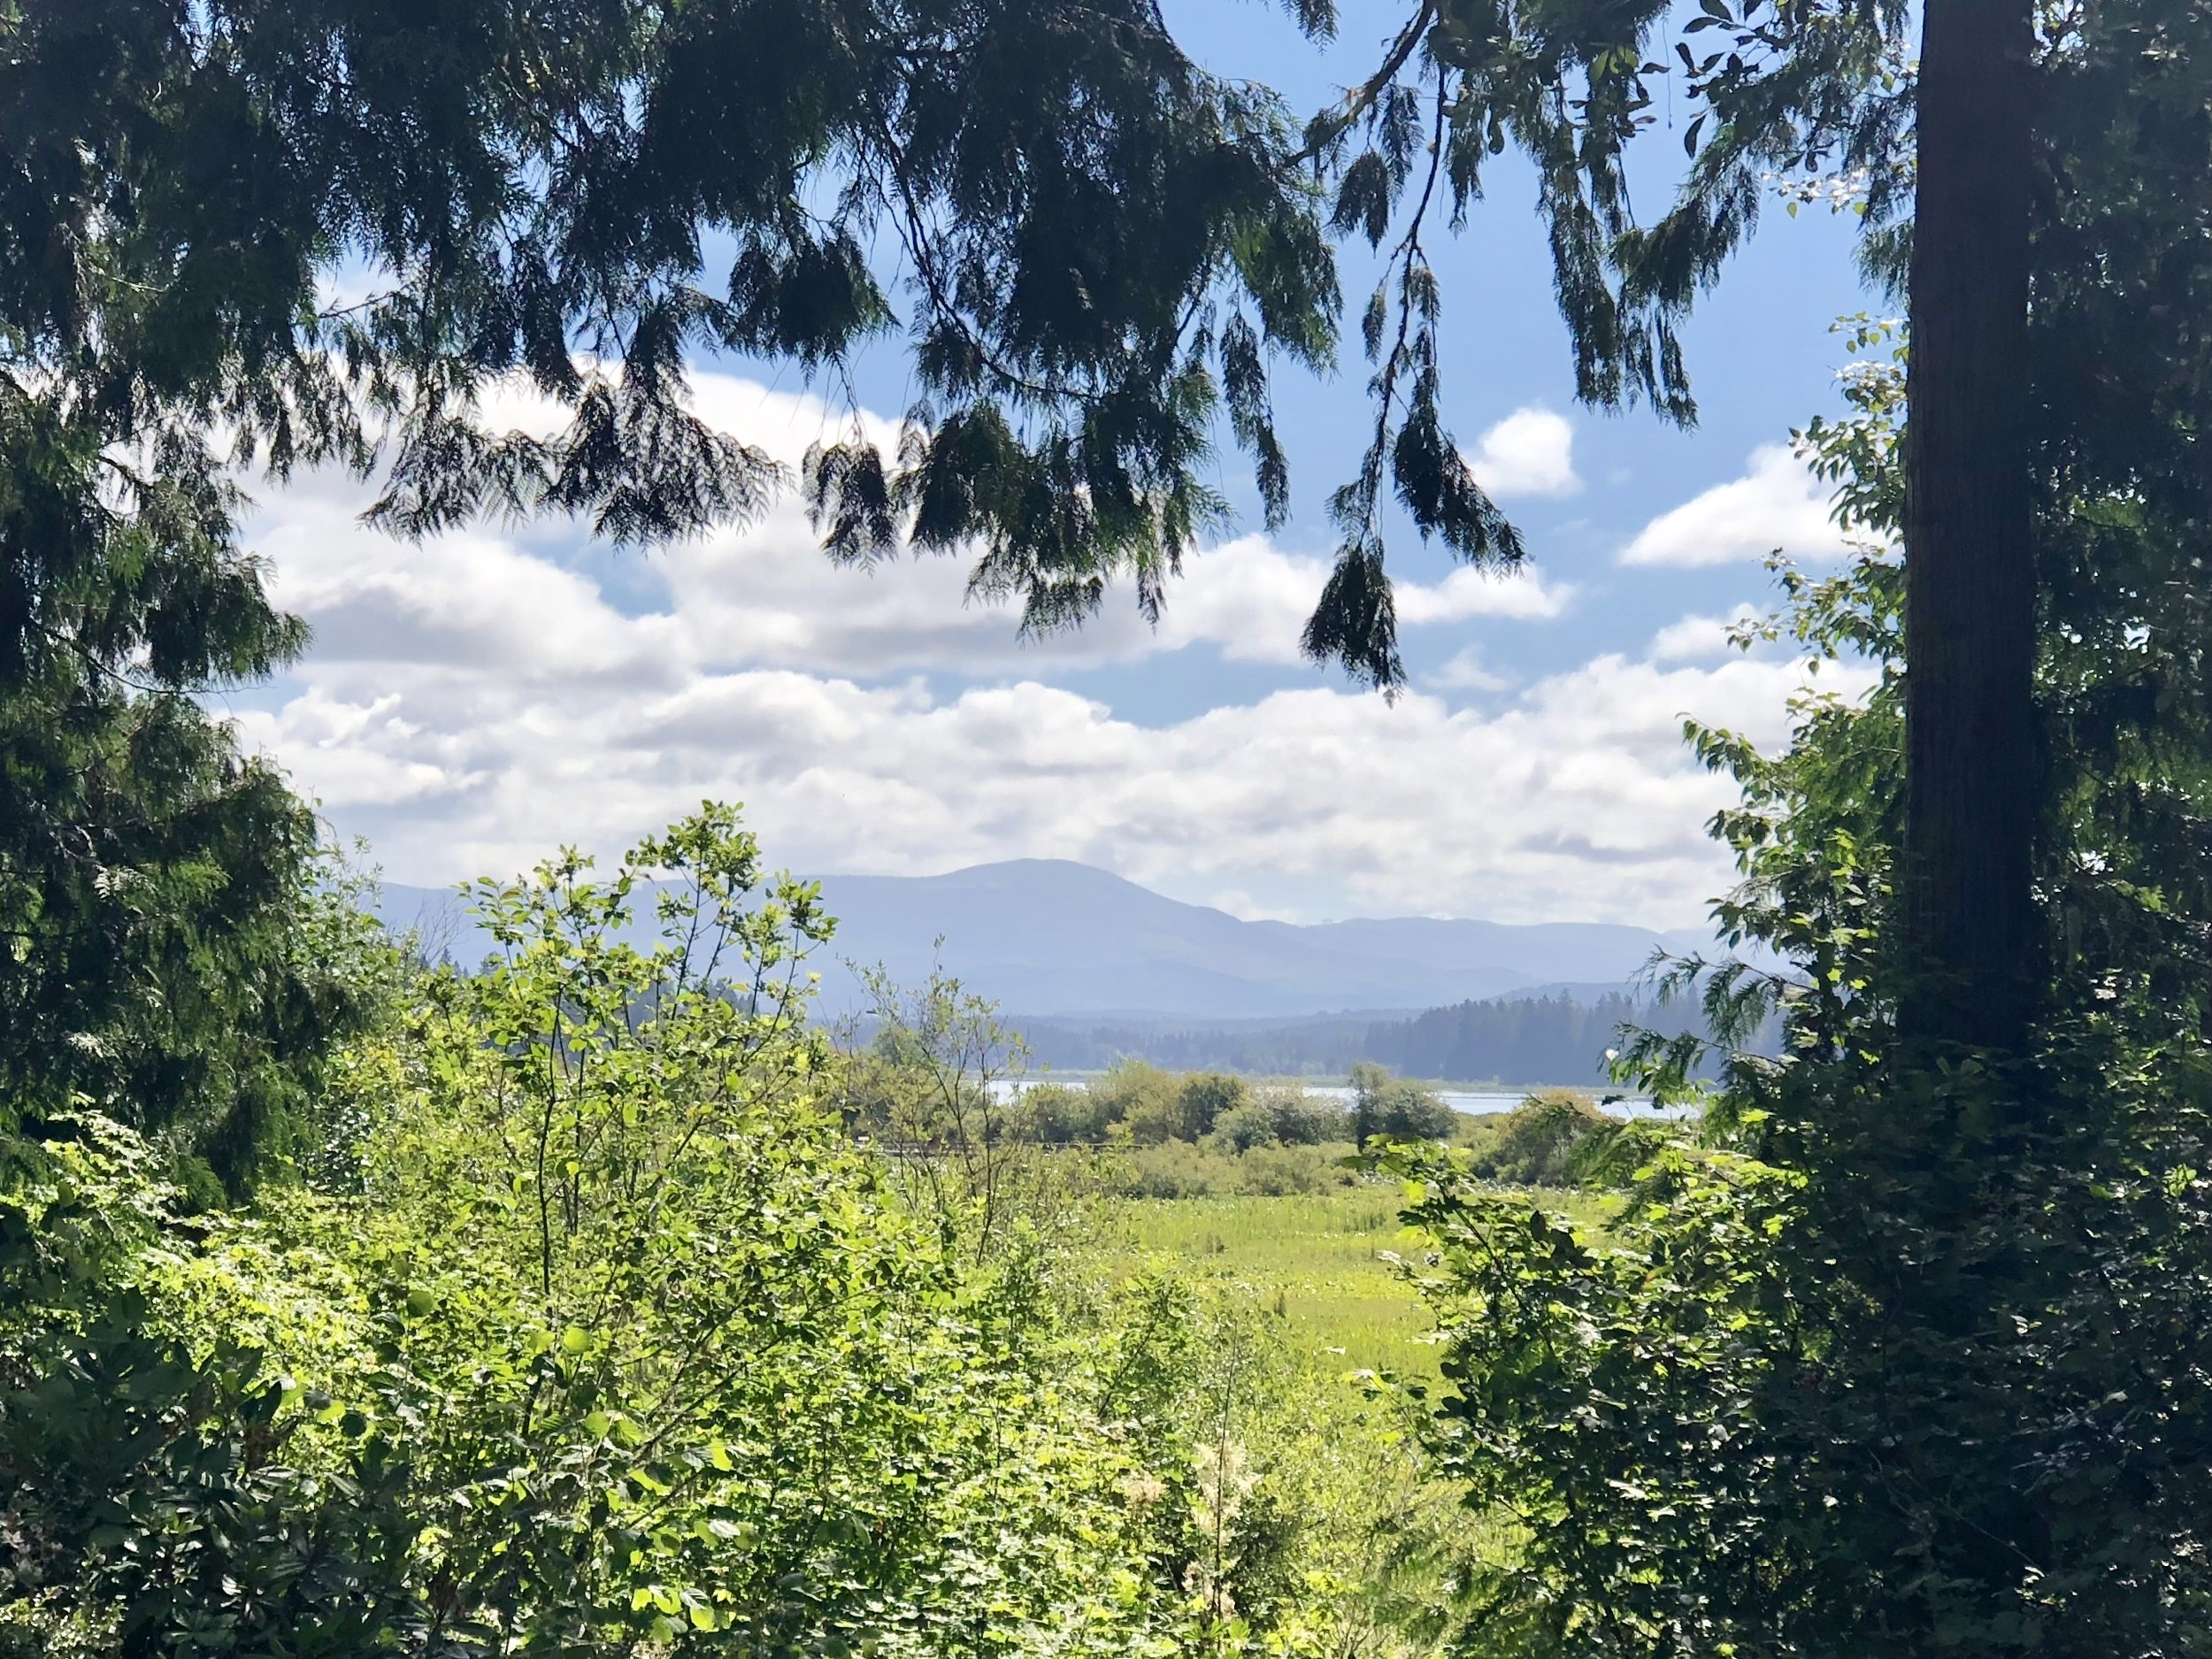 The view to the north from the Mt. St Helen's visitor station about 75 miles north of Portland.